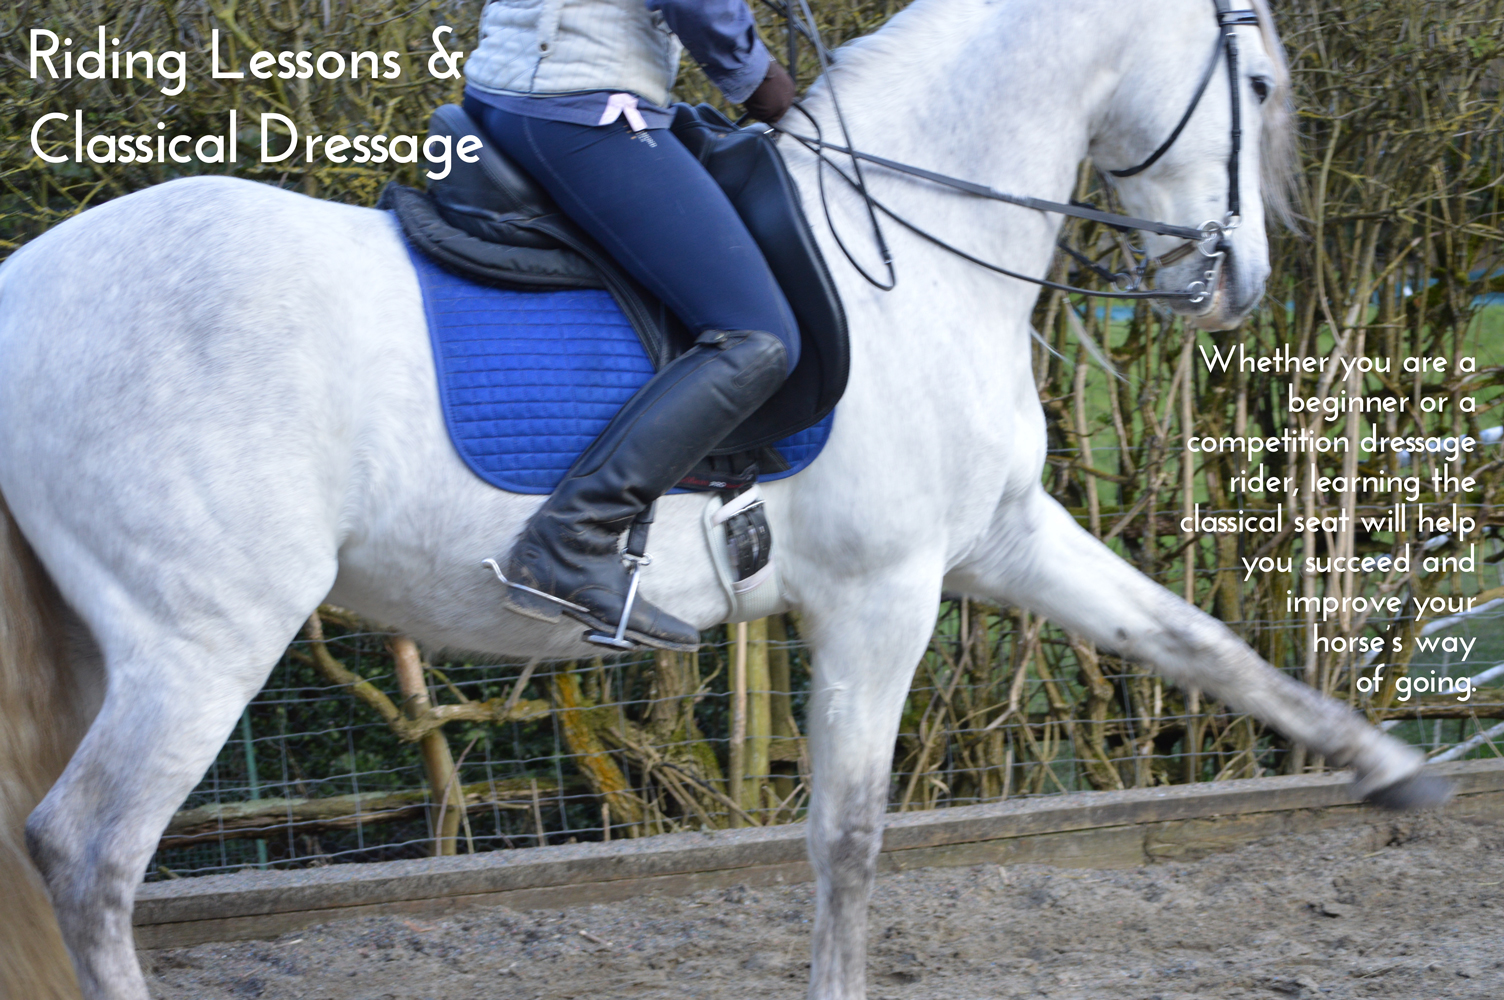 Riding Lessons & Classical Dressage